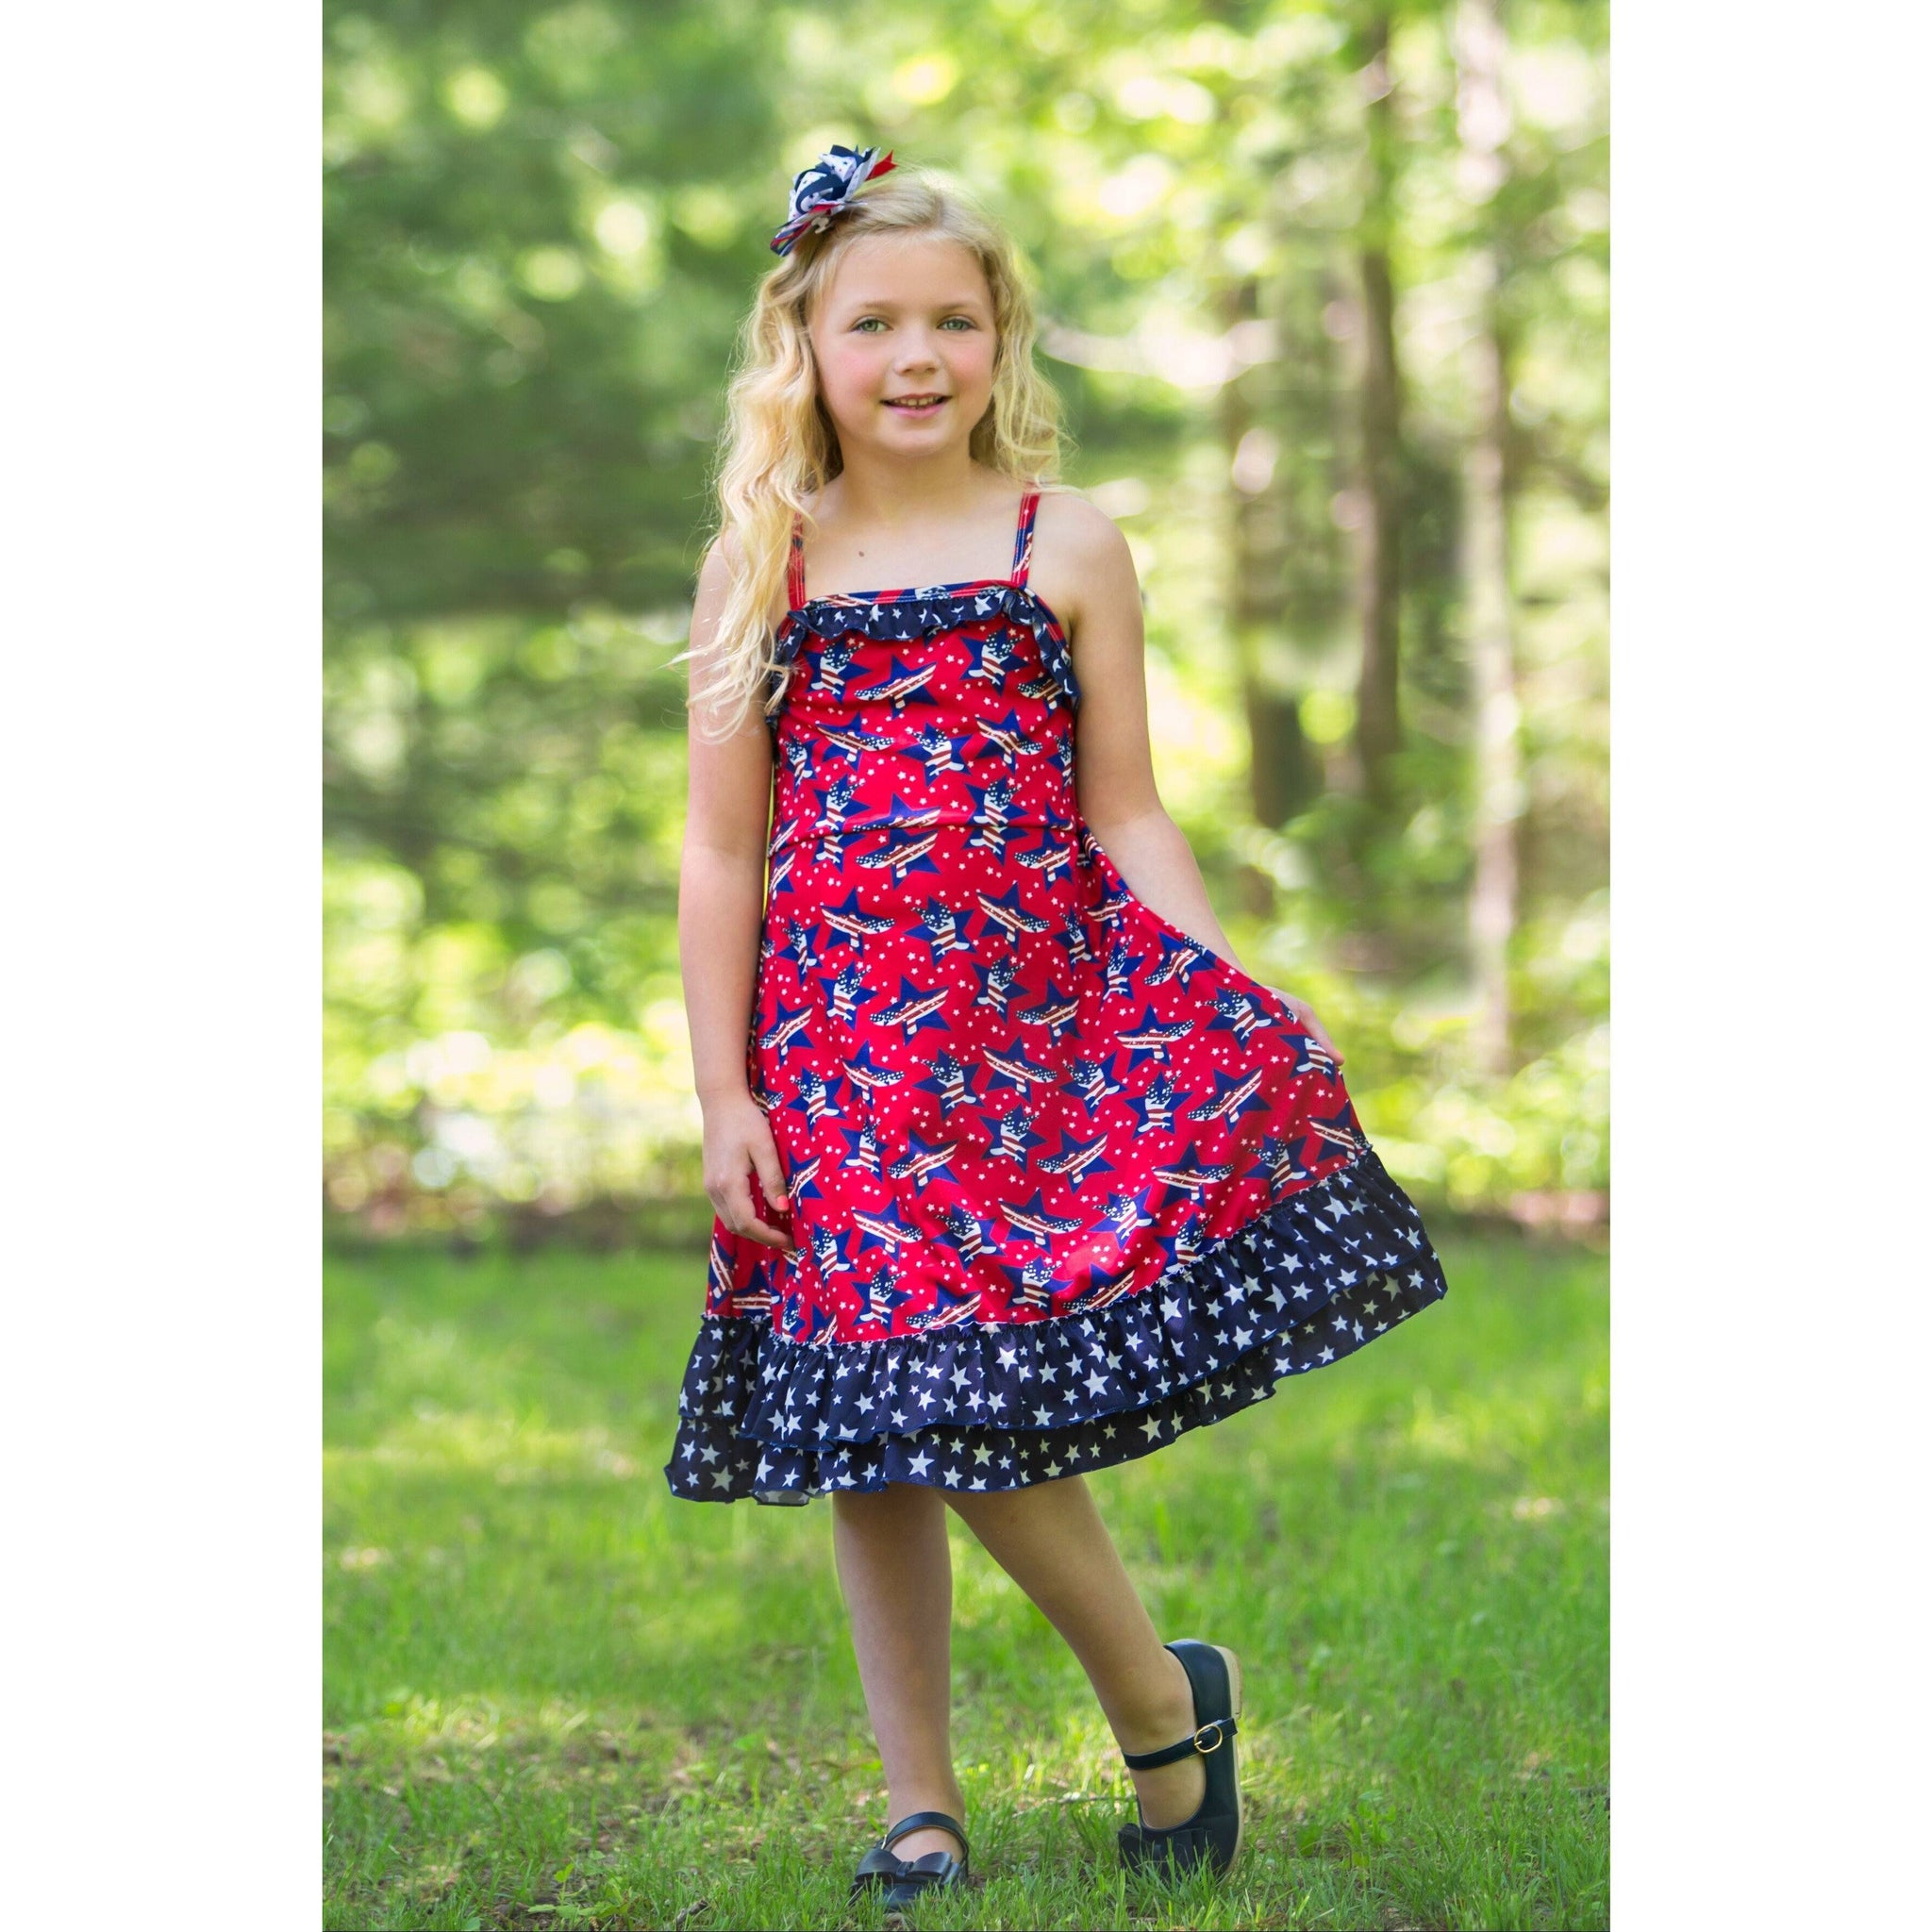 Adorable Essentials, Liberty Belle Jessa Dress,Dresses,Adorable Essentials, LLC